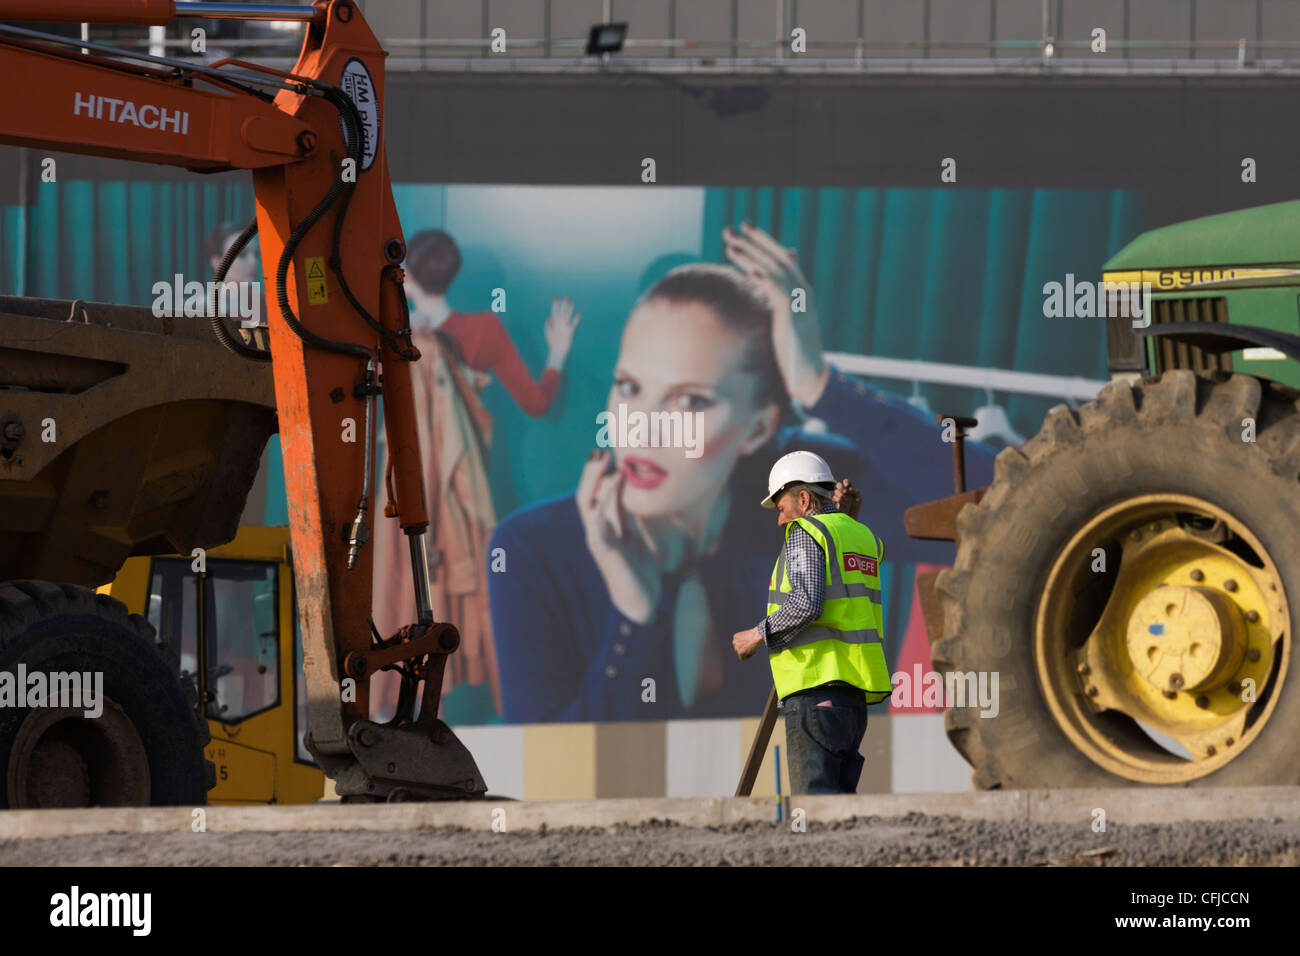 an-excavator-and-aspirational-poster-on-